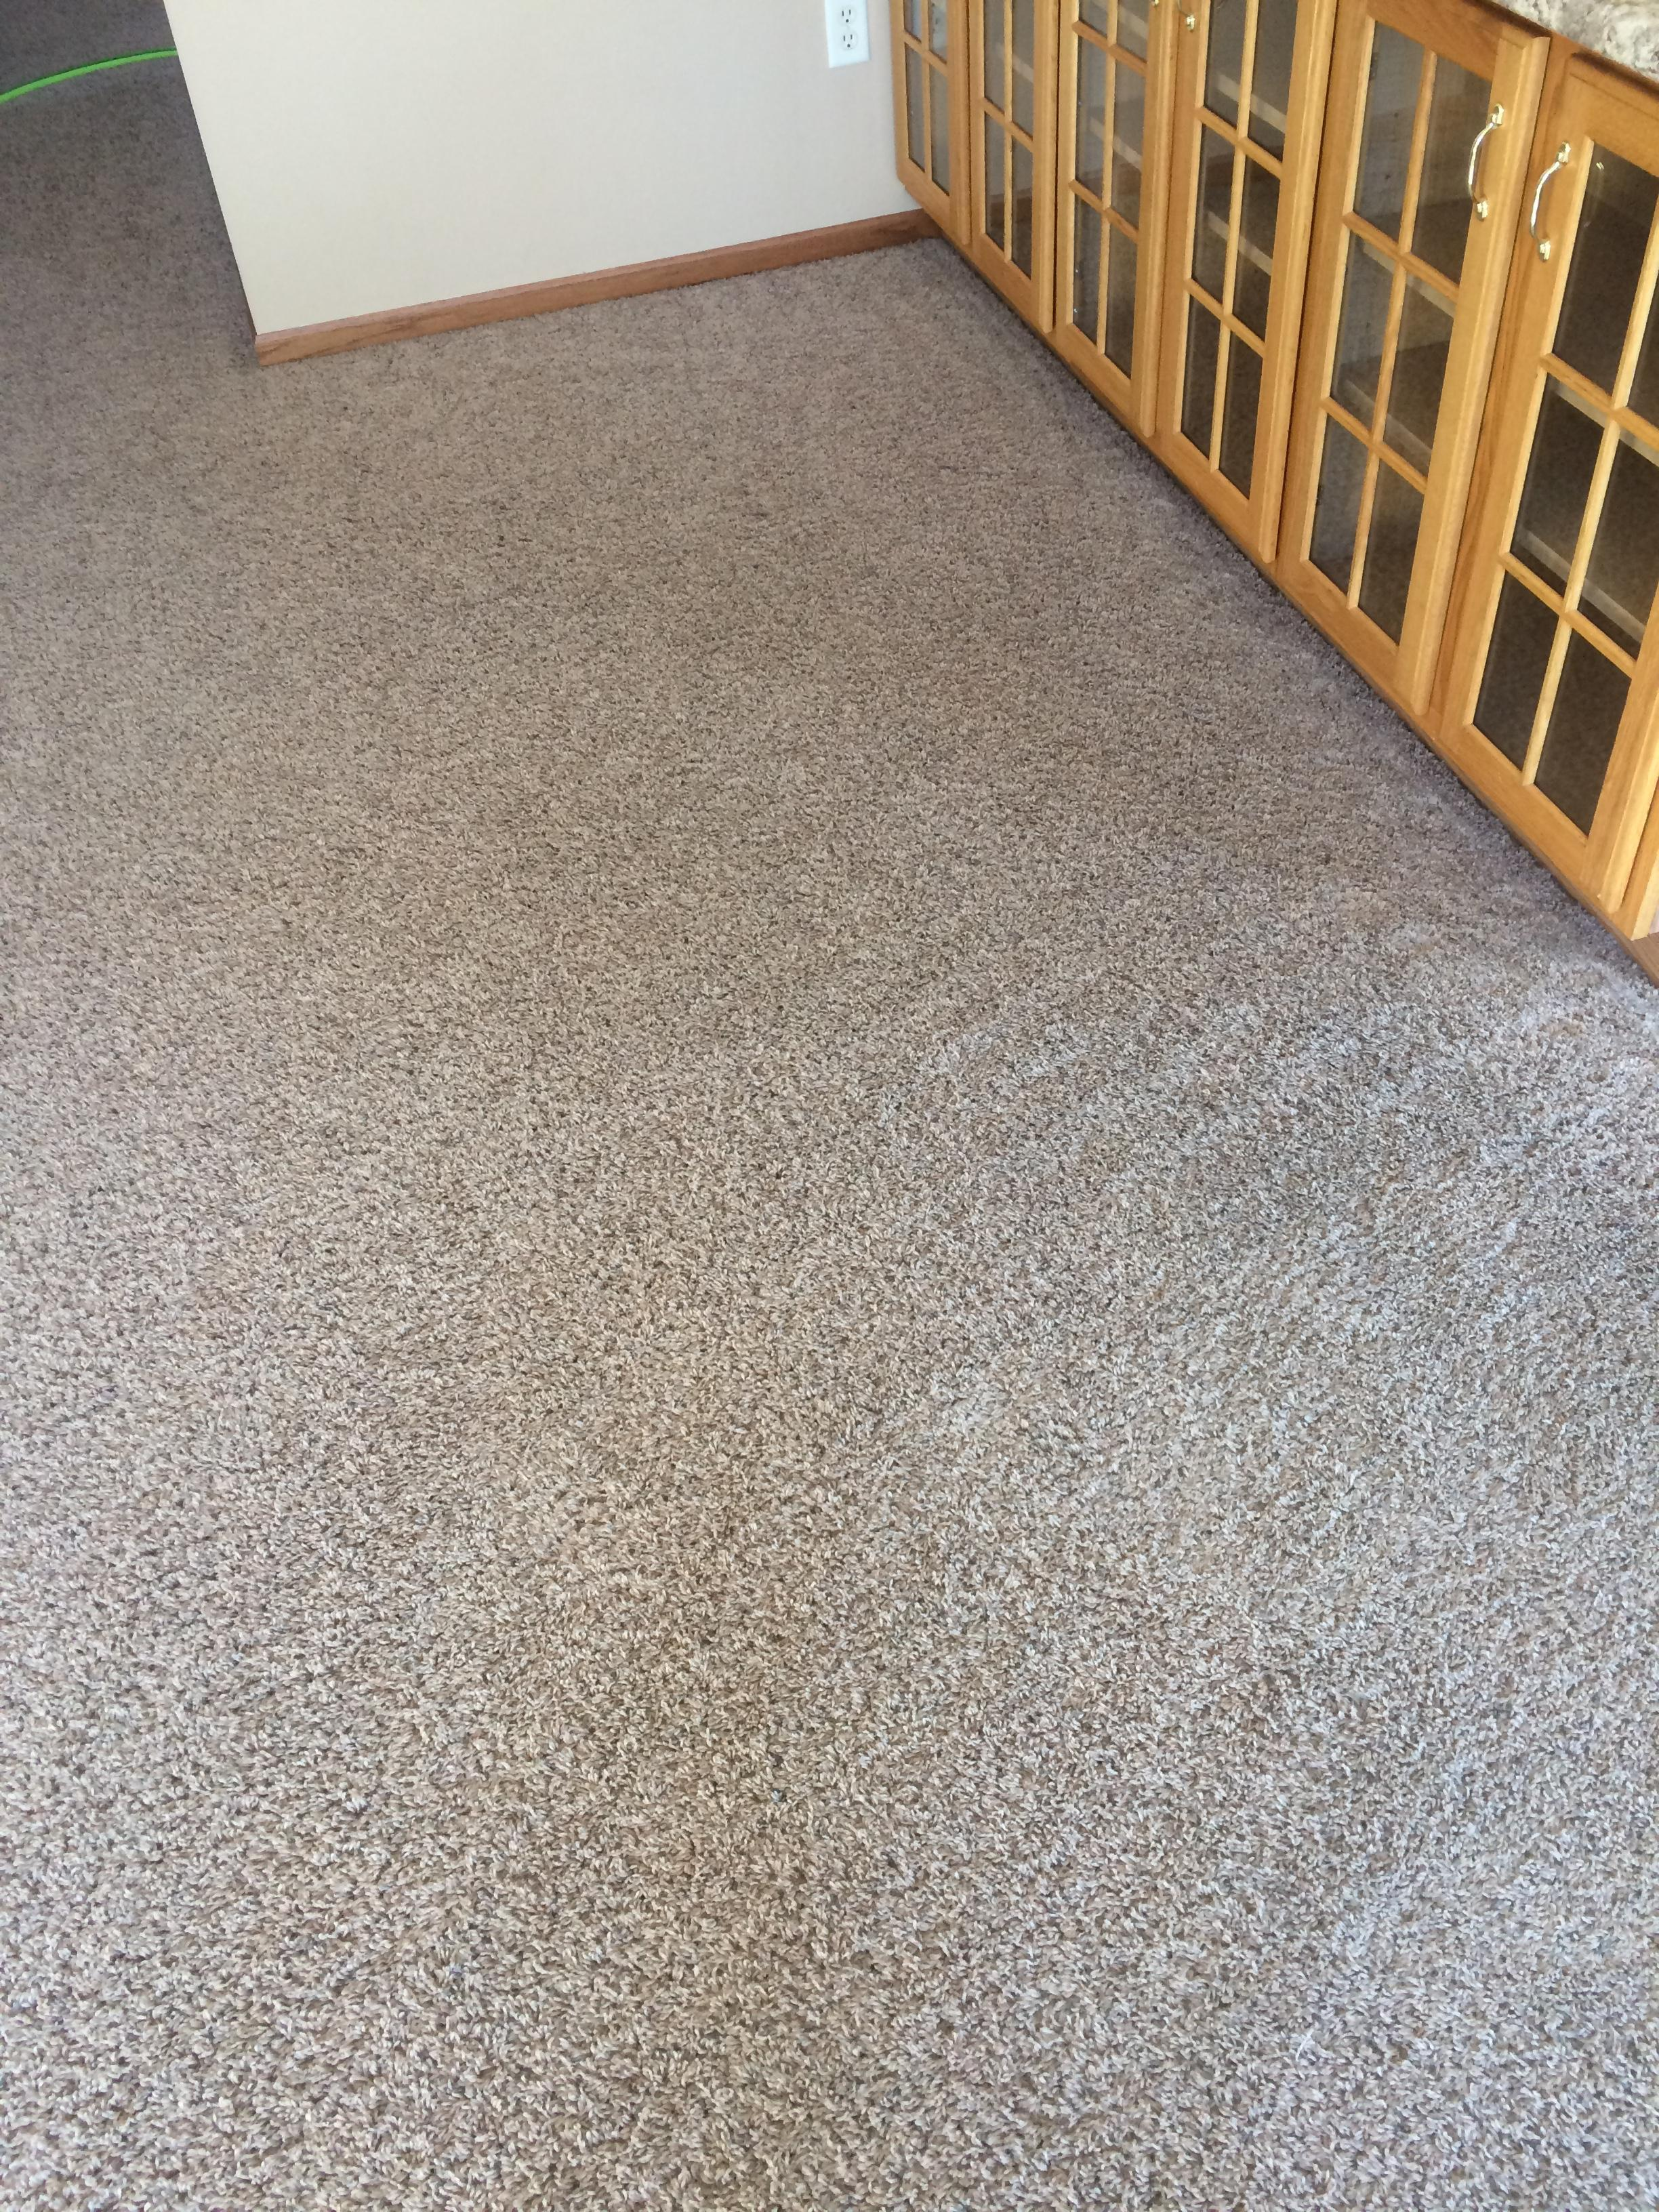 Carpet wizard in burlington ia furniture cleaning for Furniture burlington wa